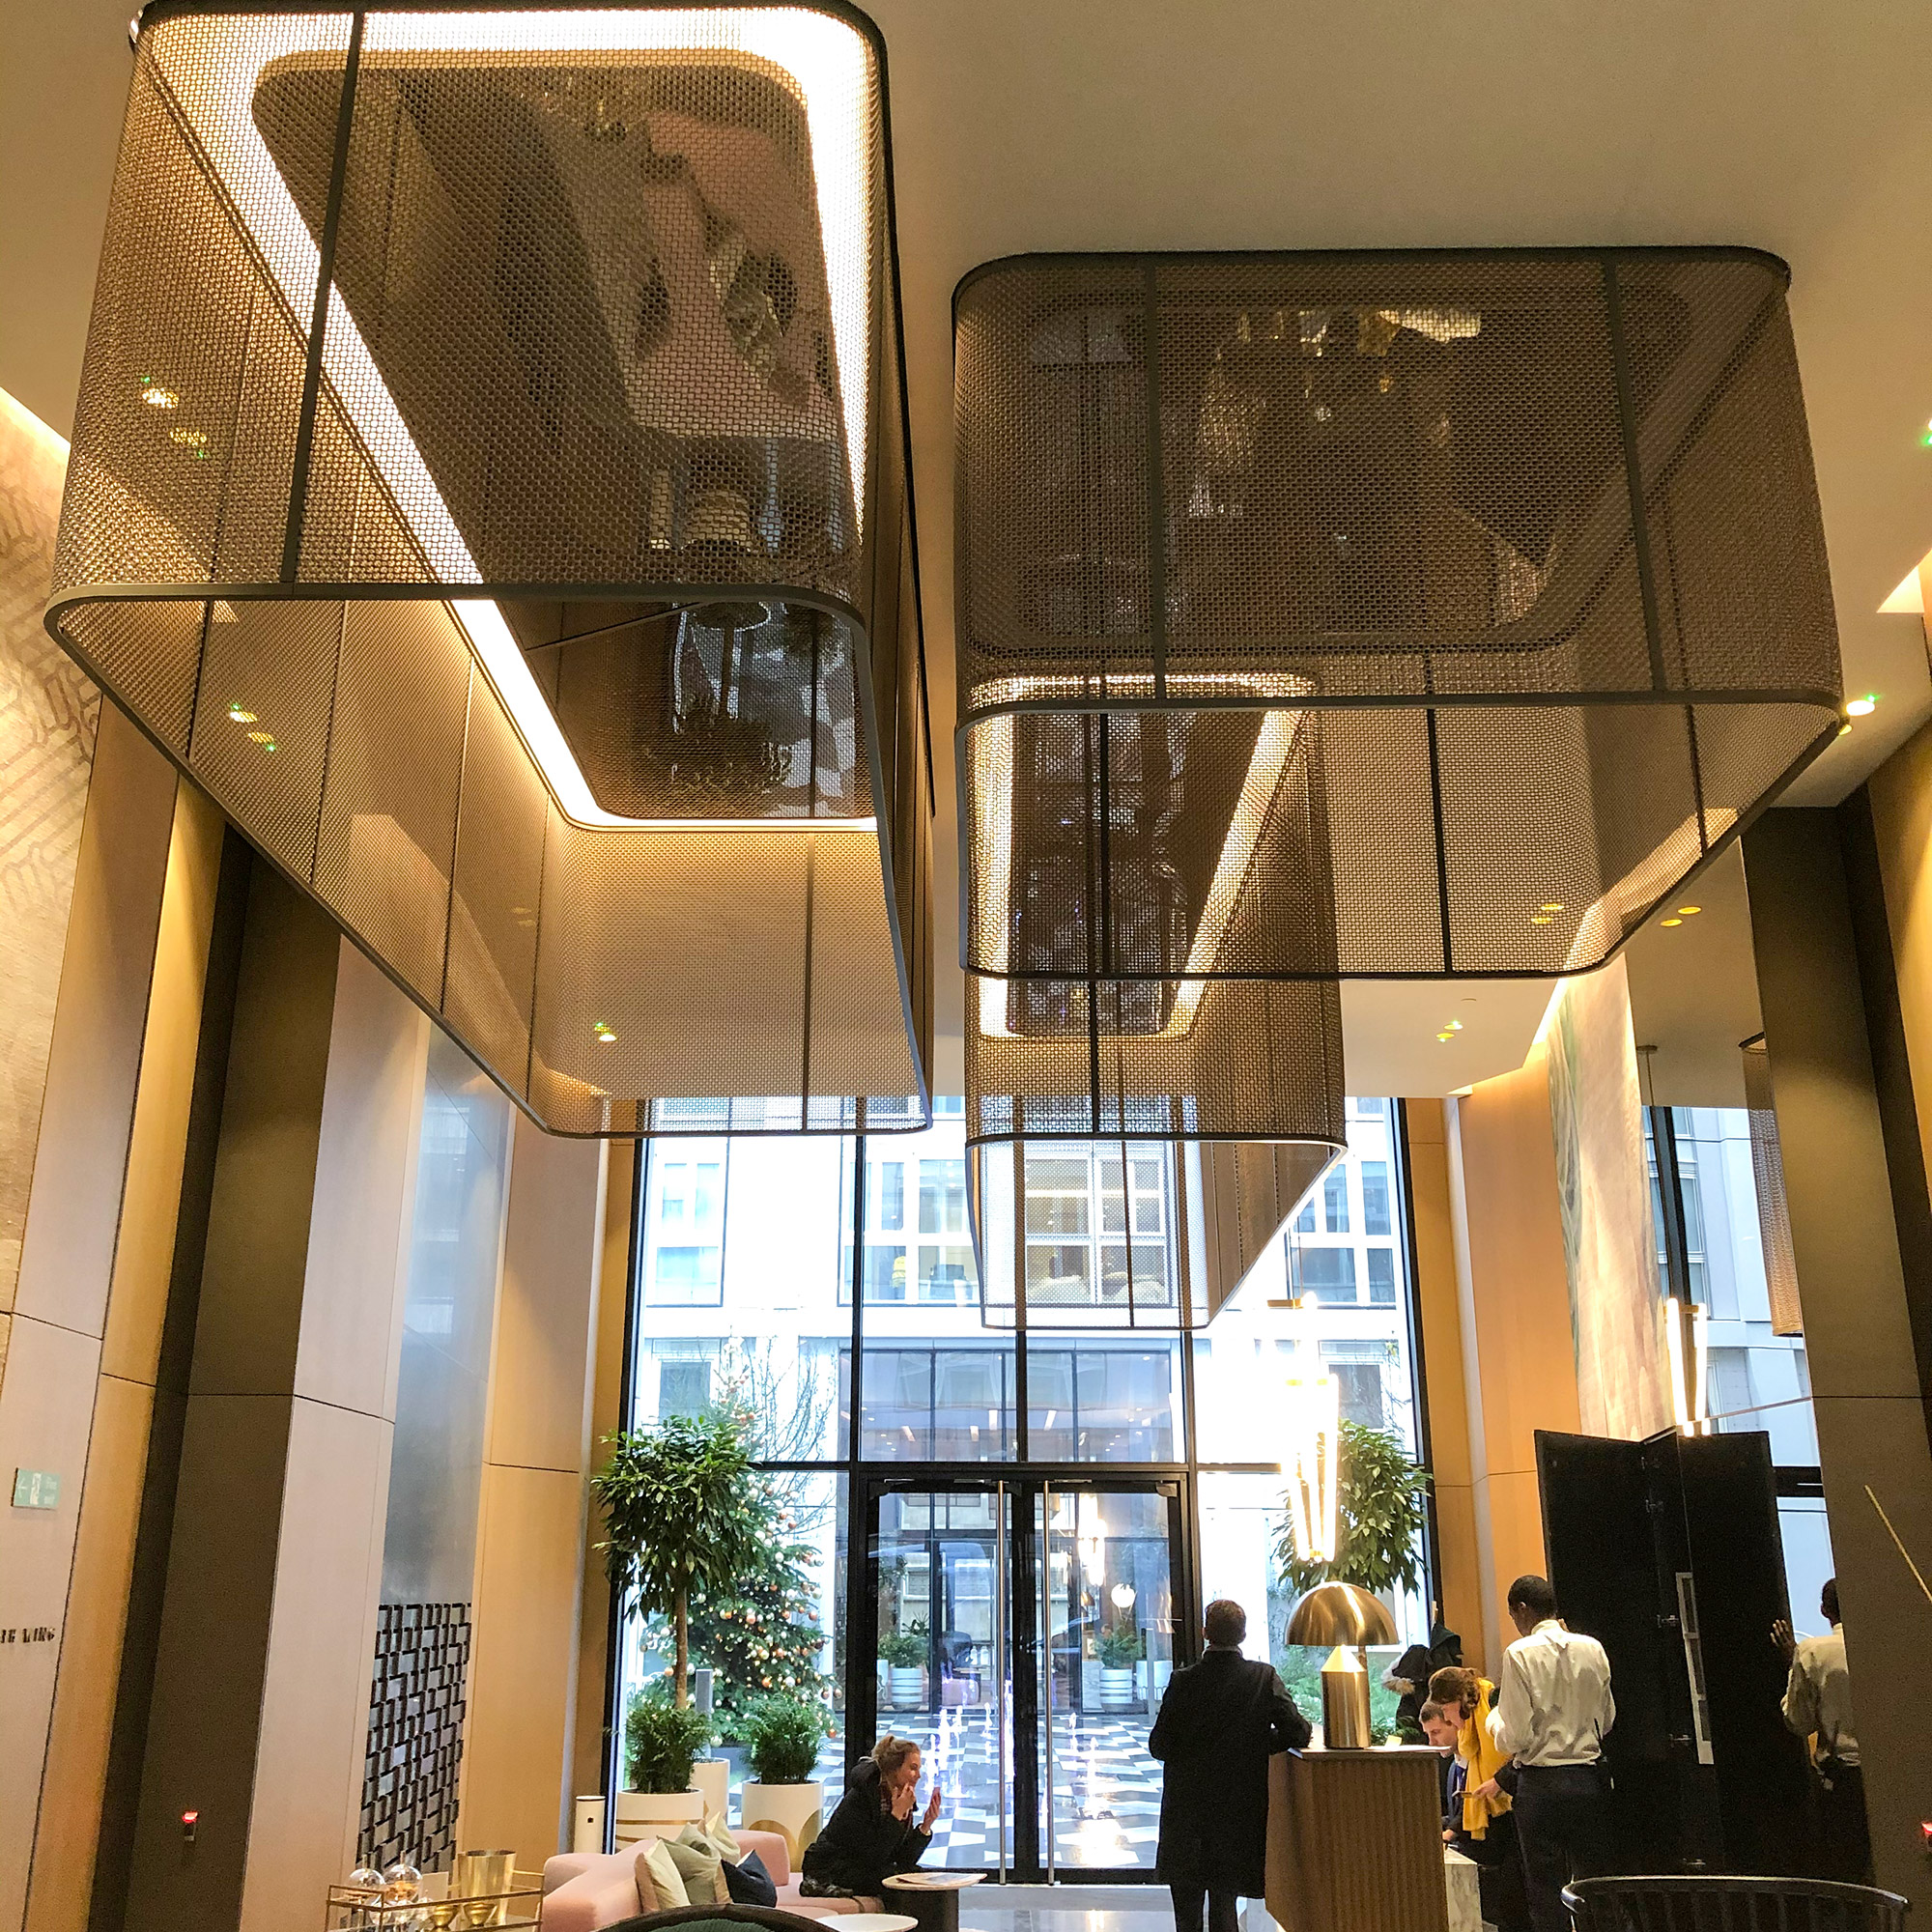 Throughout Lincoln Square, Banker Wire's M22-83 is used in a variety of places like the lobby as chandeliers, the hallways as wall cladding, and in various suites as partitions.